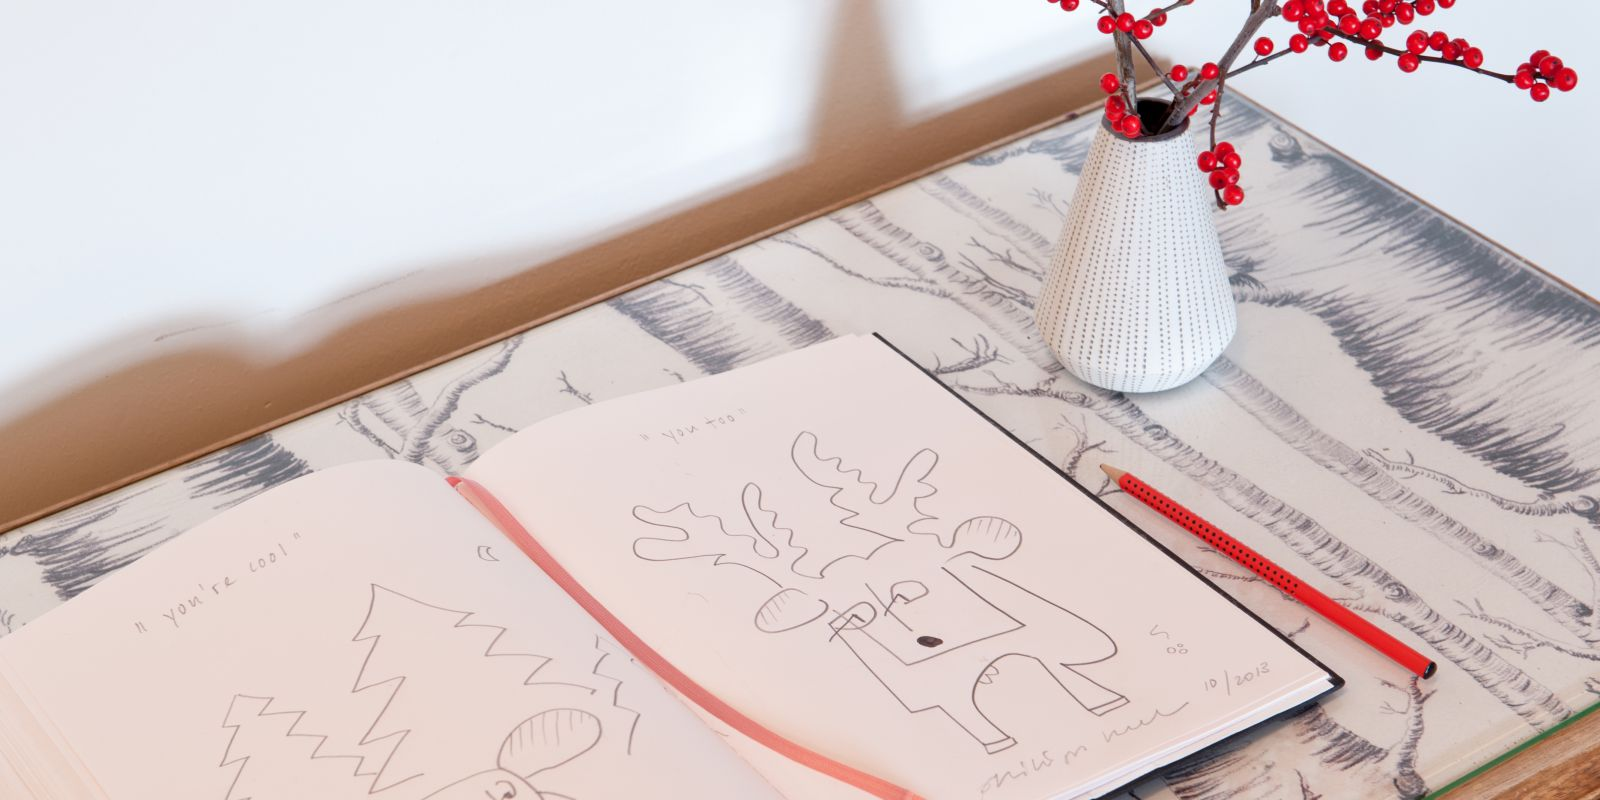 Creative hotel guest book with drawing about a stay, culture travel and art, little details